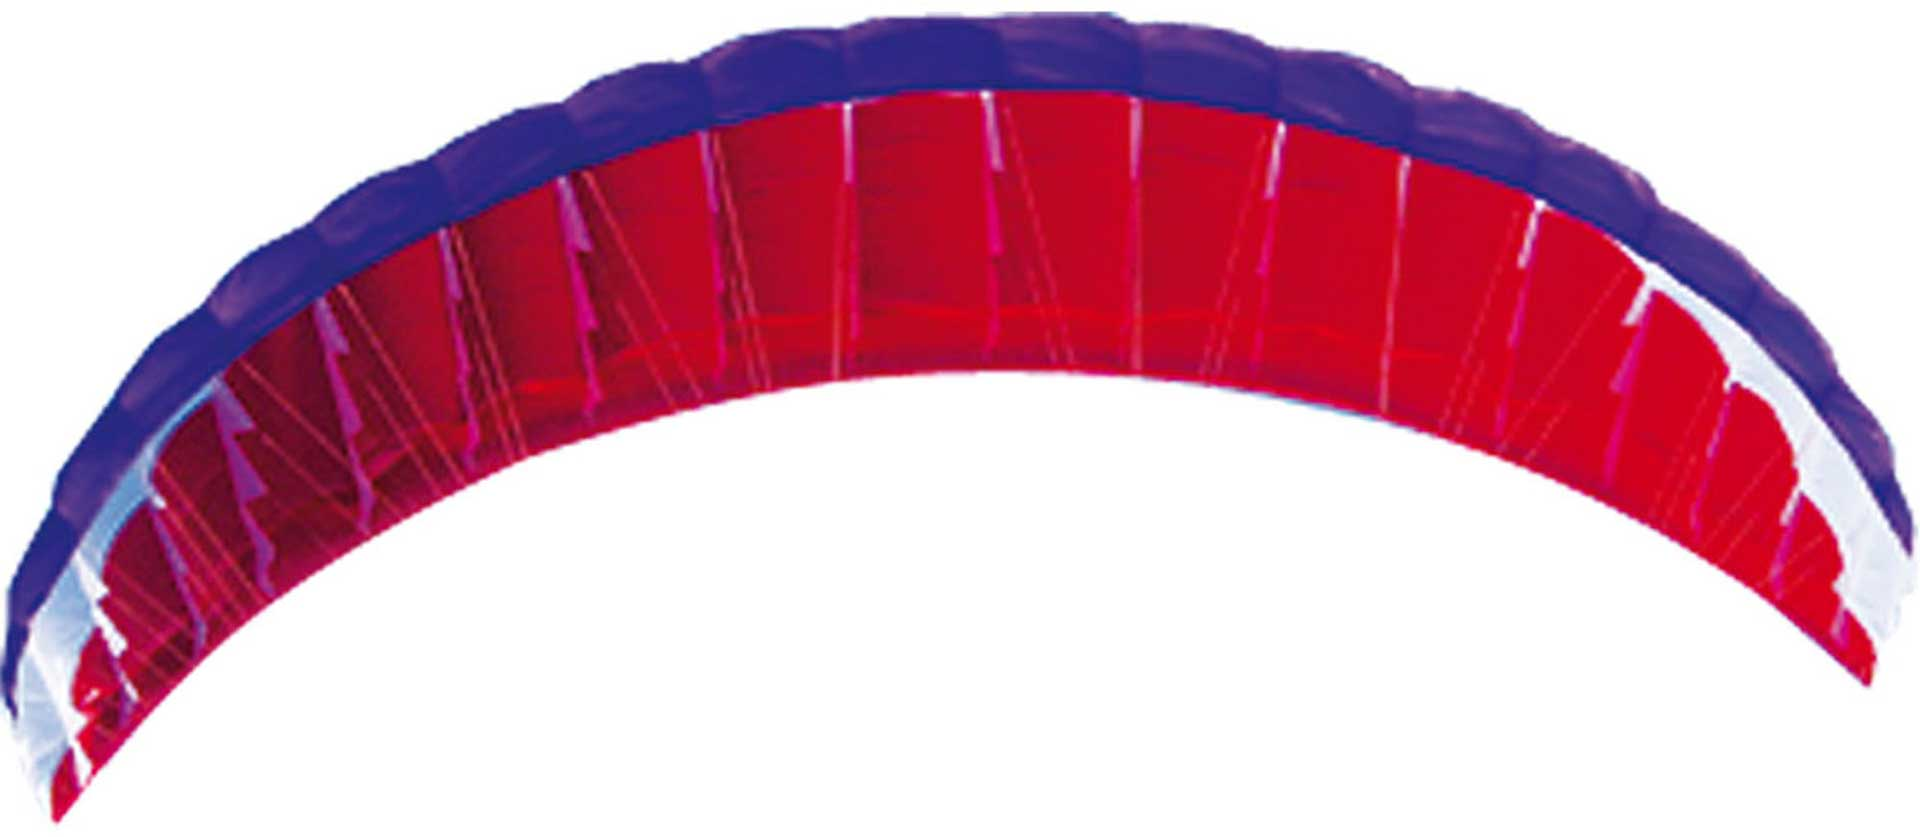 PARA-RC RC-FLAIR 4.5 PARACHUTE VIOLET/WHITE/RED VIOLET / WHITE / RED